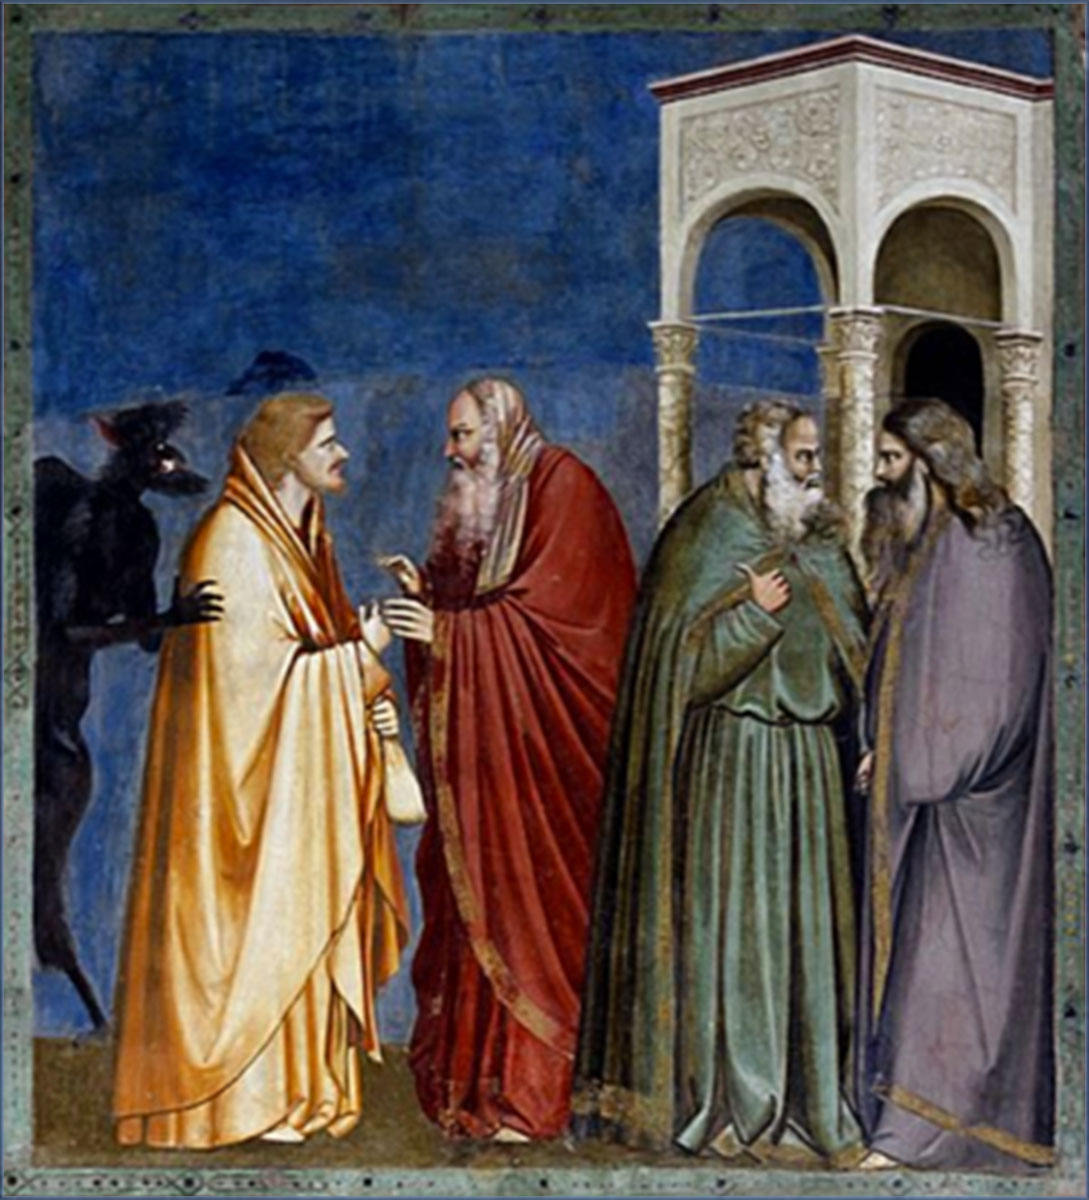 Judas receives payment for betrayal (Giotto, Scrovegni Chapel, 1304-1306)